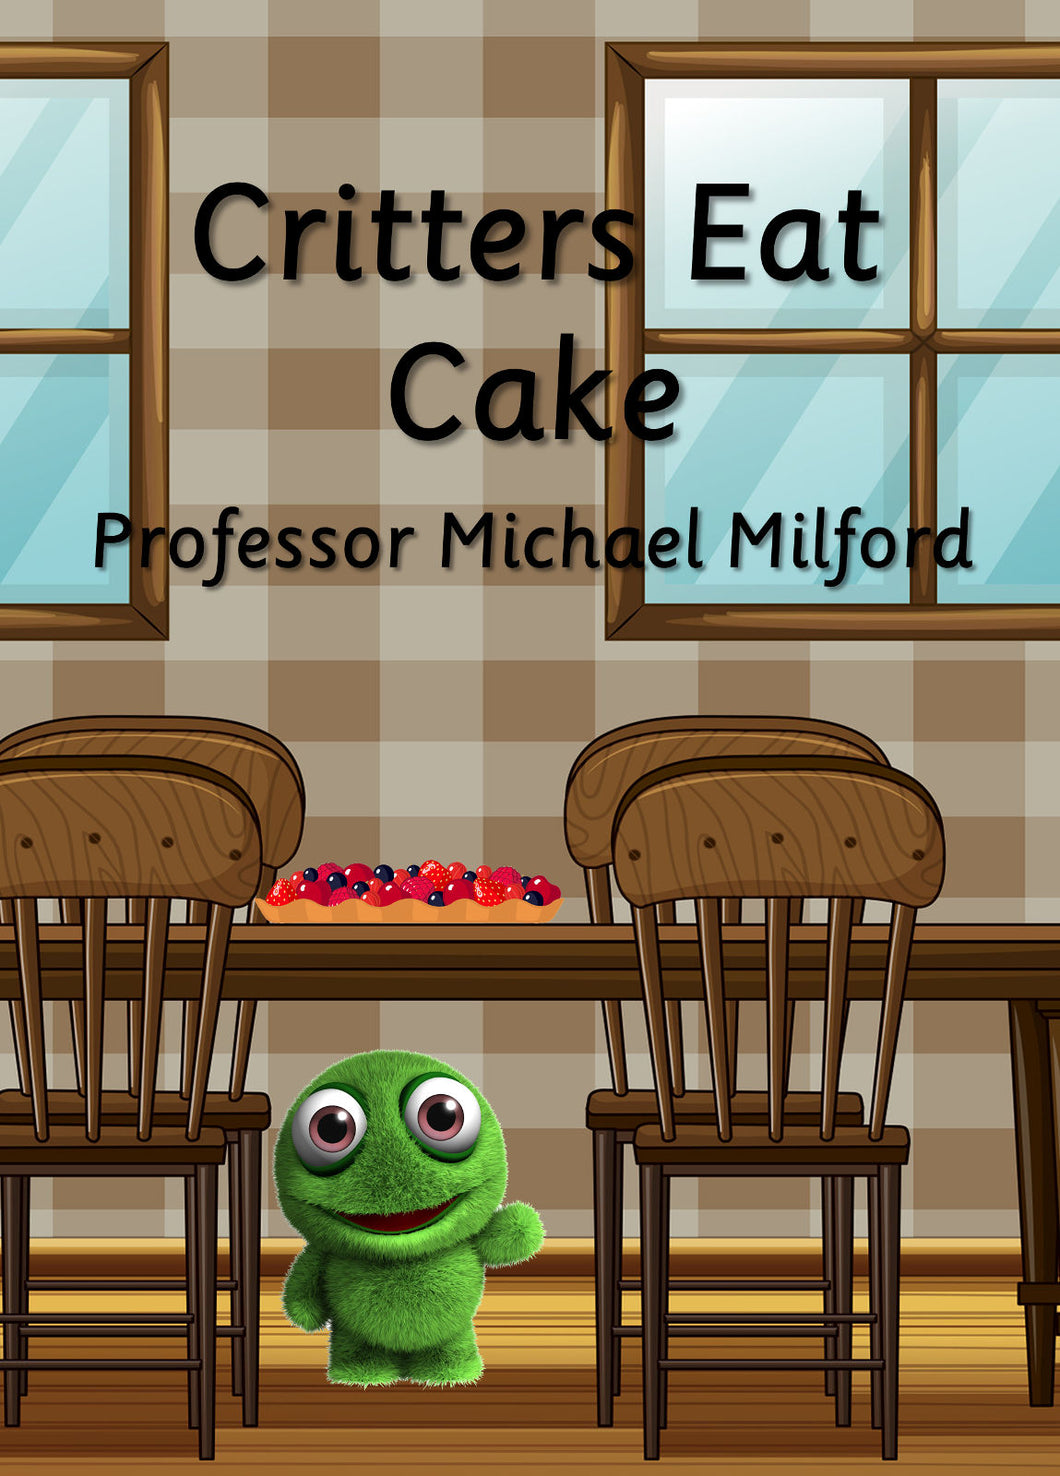 Critters Eat Cake (E-book only)